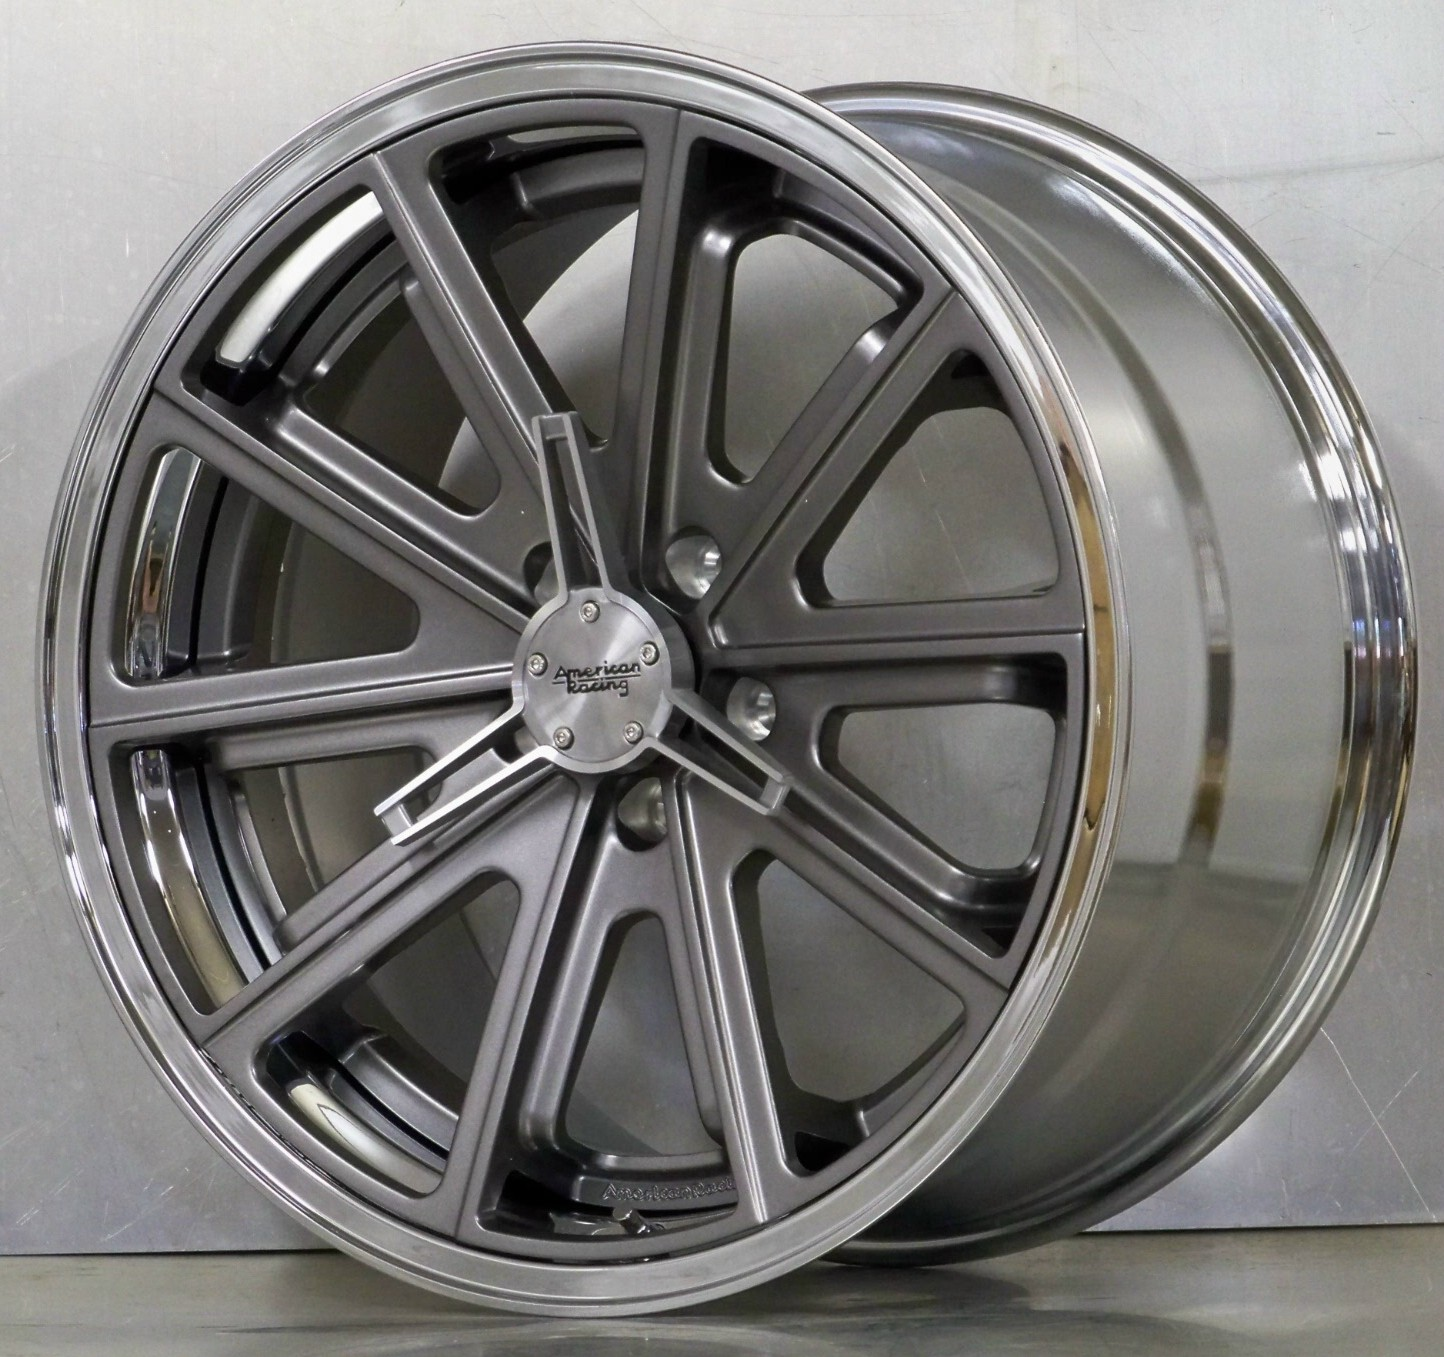 20s. 901S wheels set of 4 various colors Mustang 2005-2017